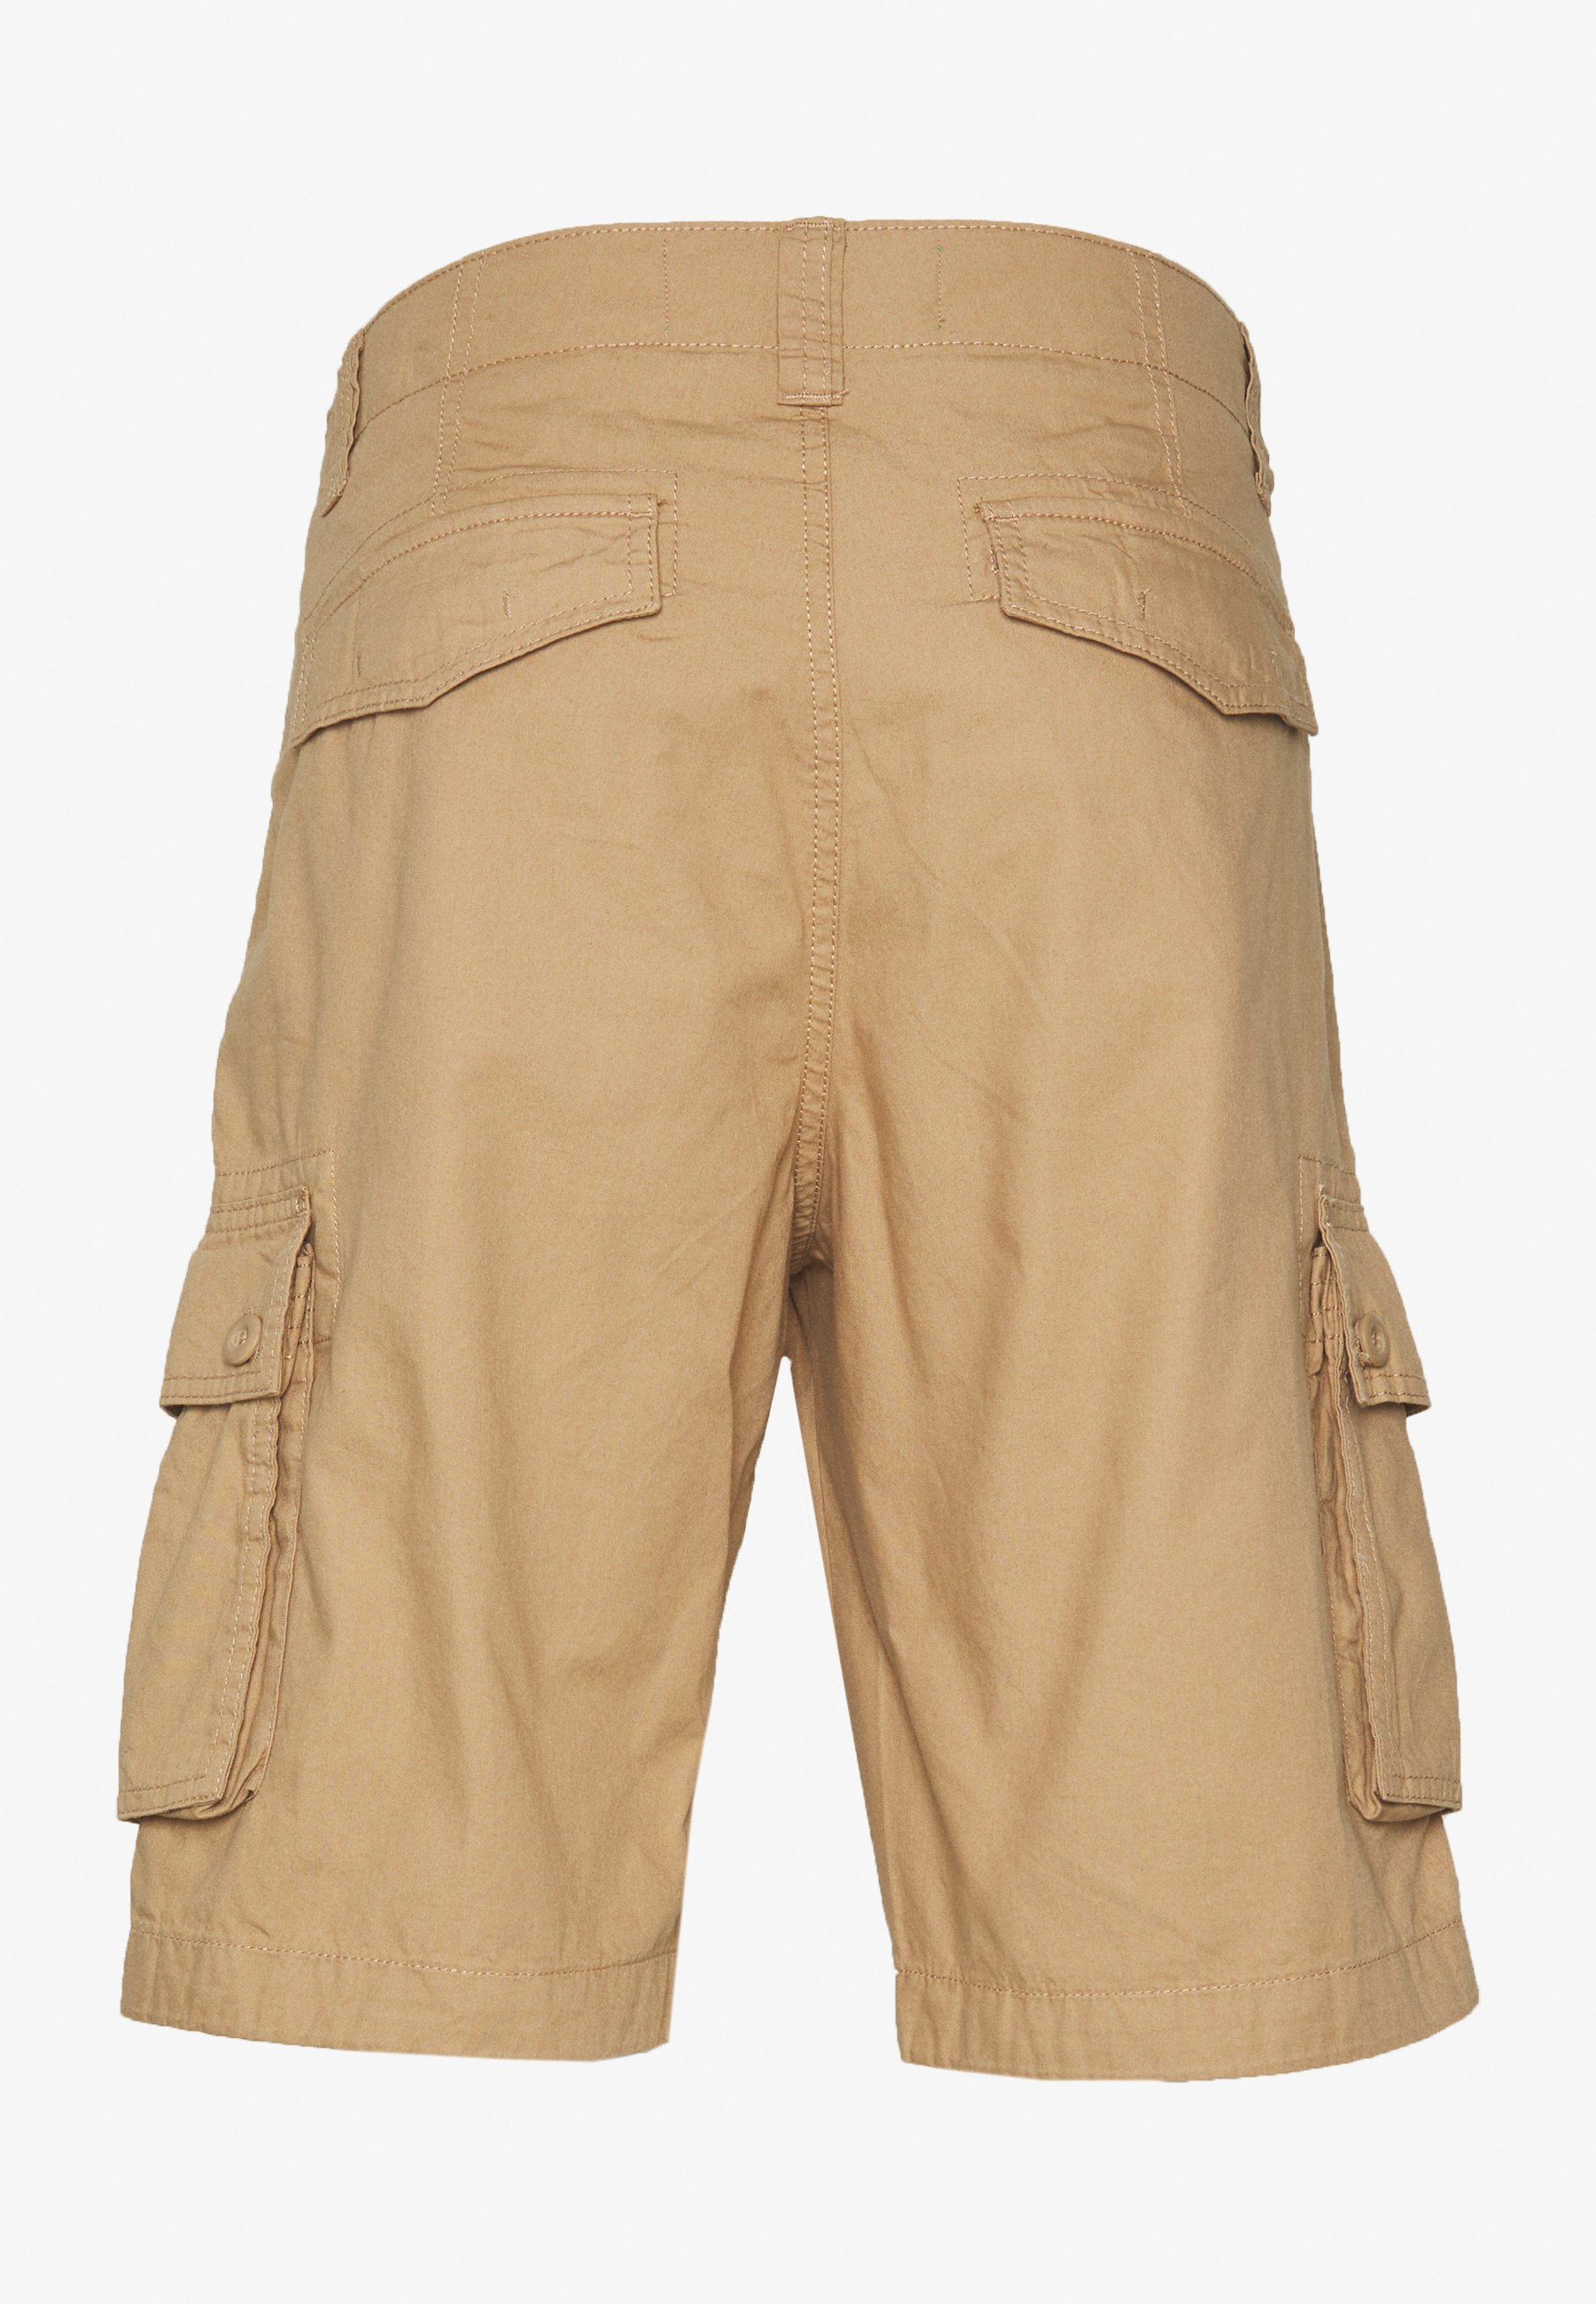 Benetton Cargo - Shorts Beige